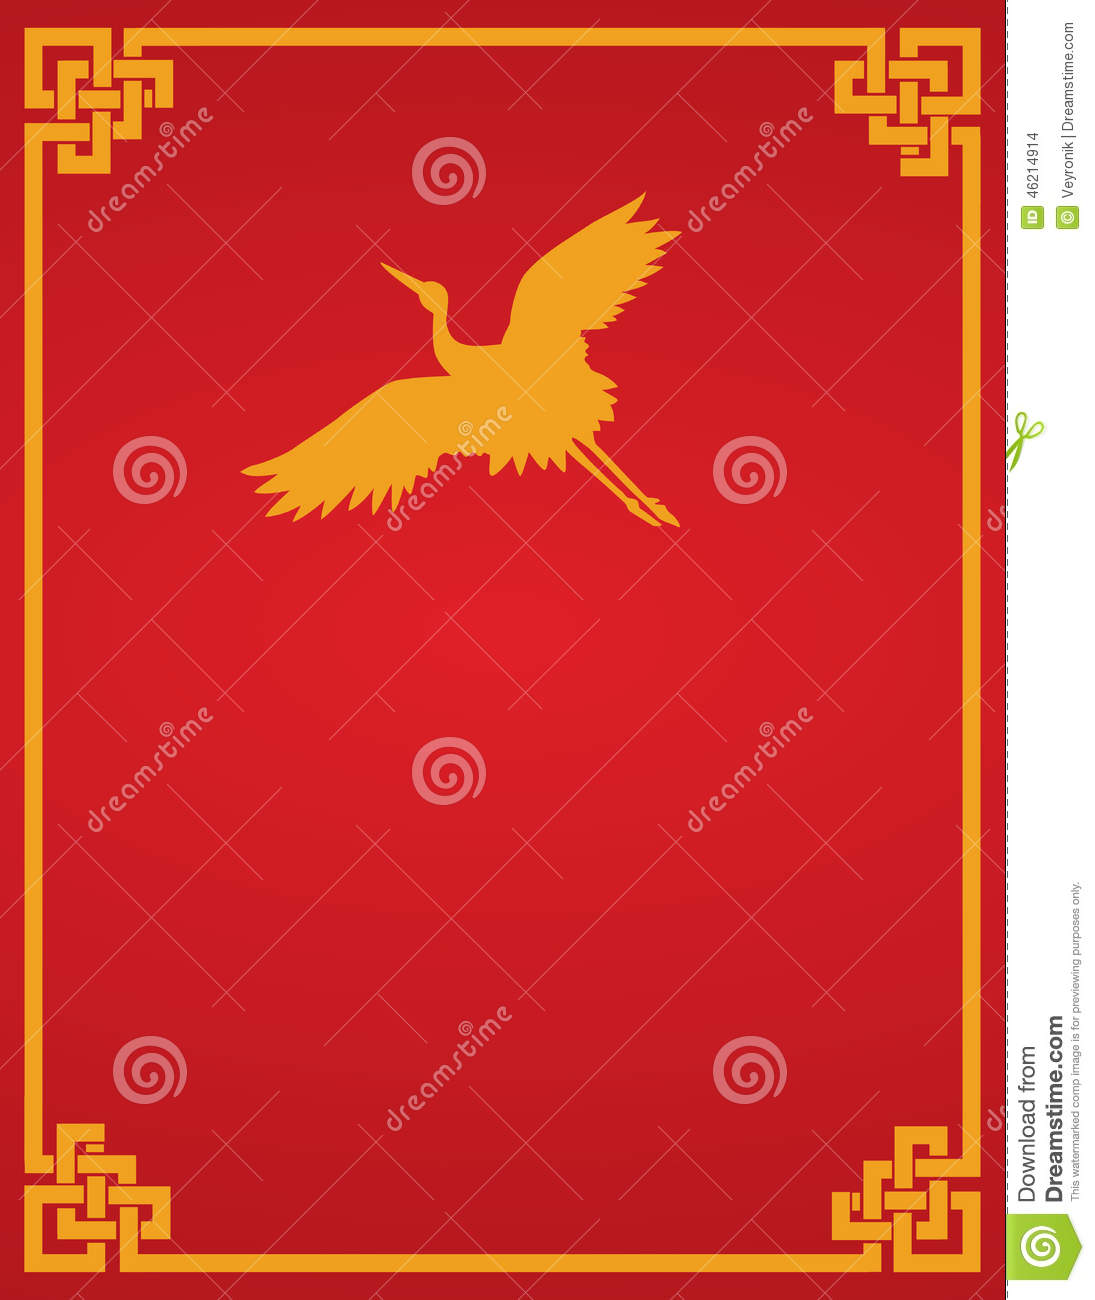 Book Cover Design From East Asia ~ Chinese crane red background stock vector image